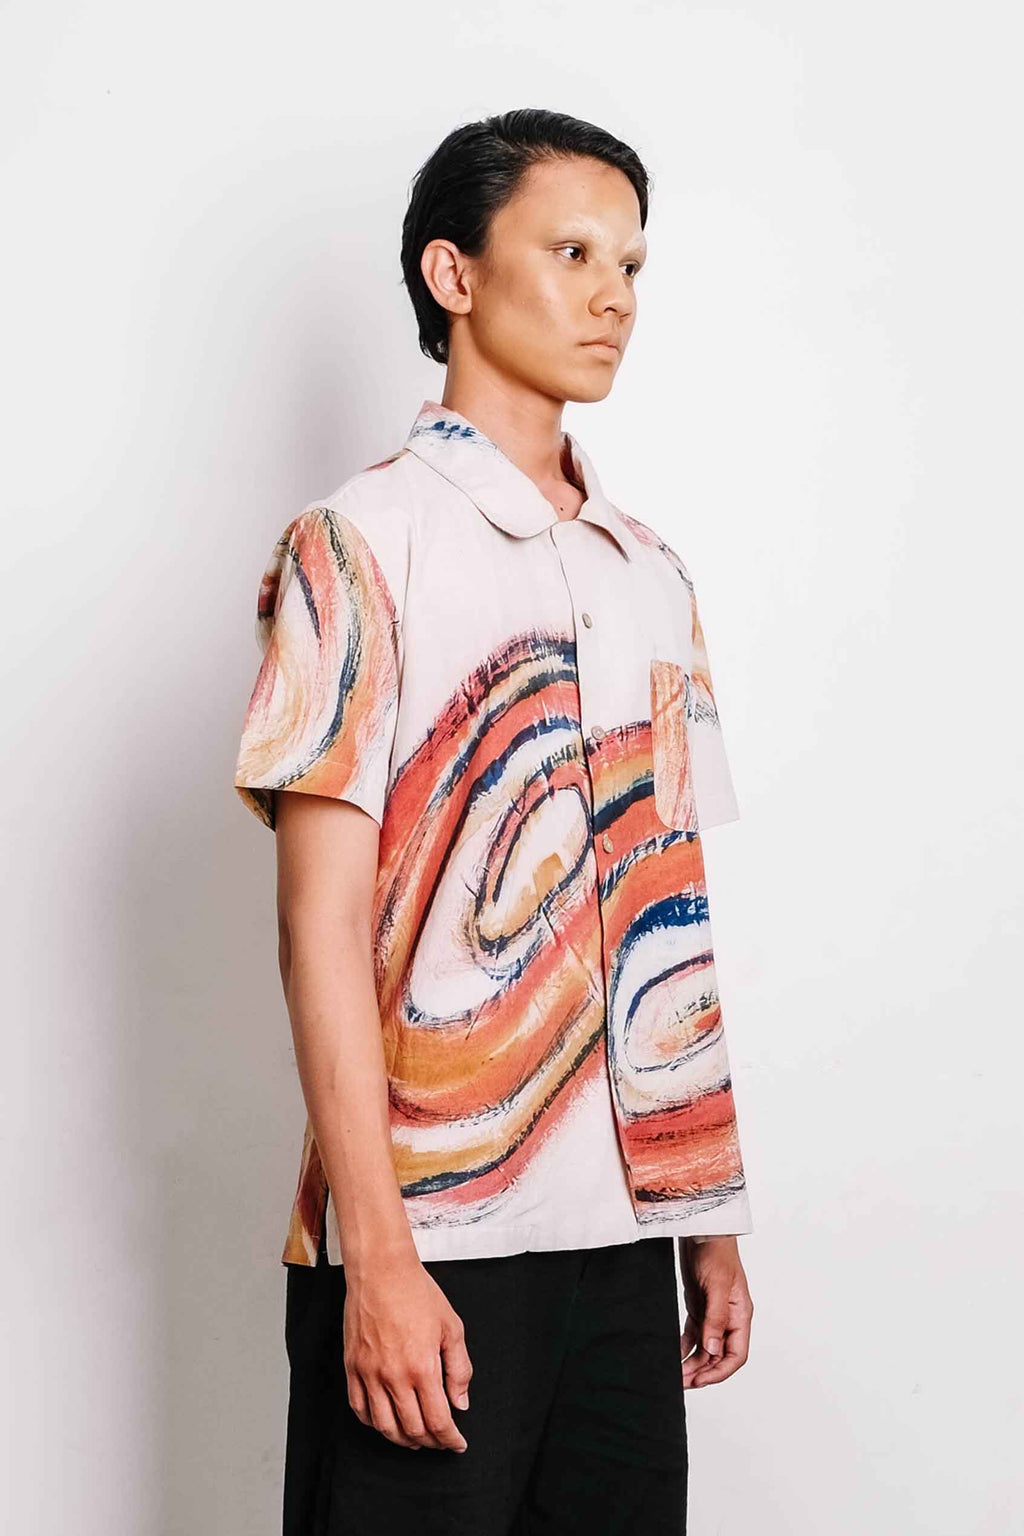 Saturn Shirt - Imaji Studio